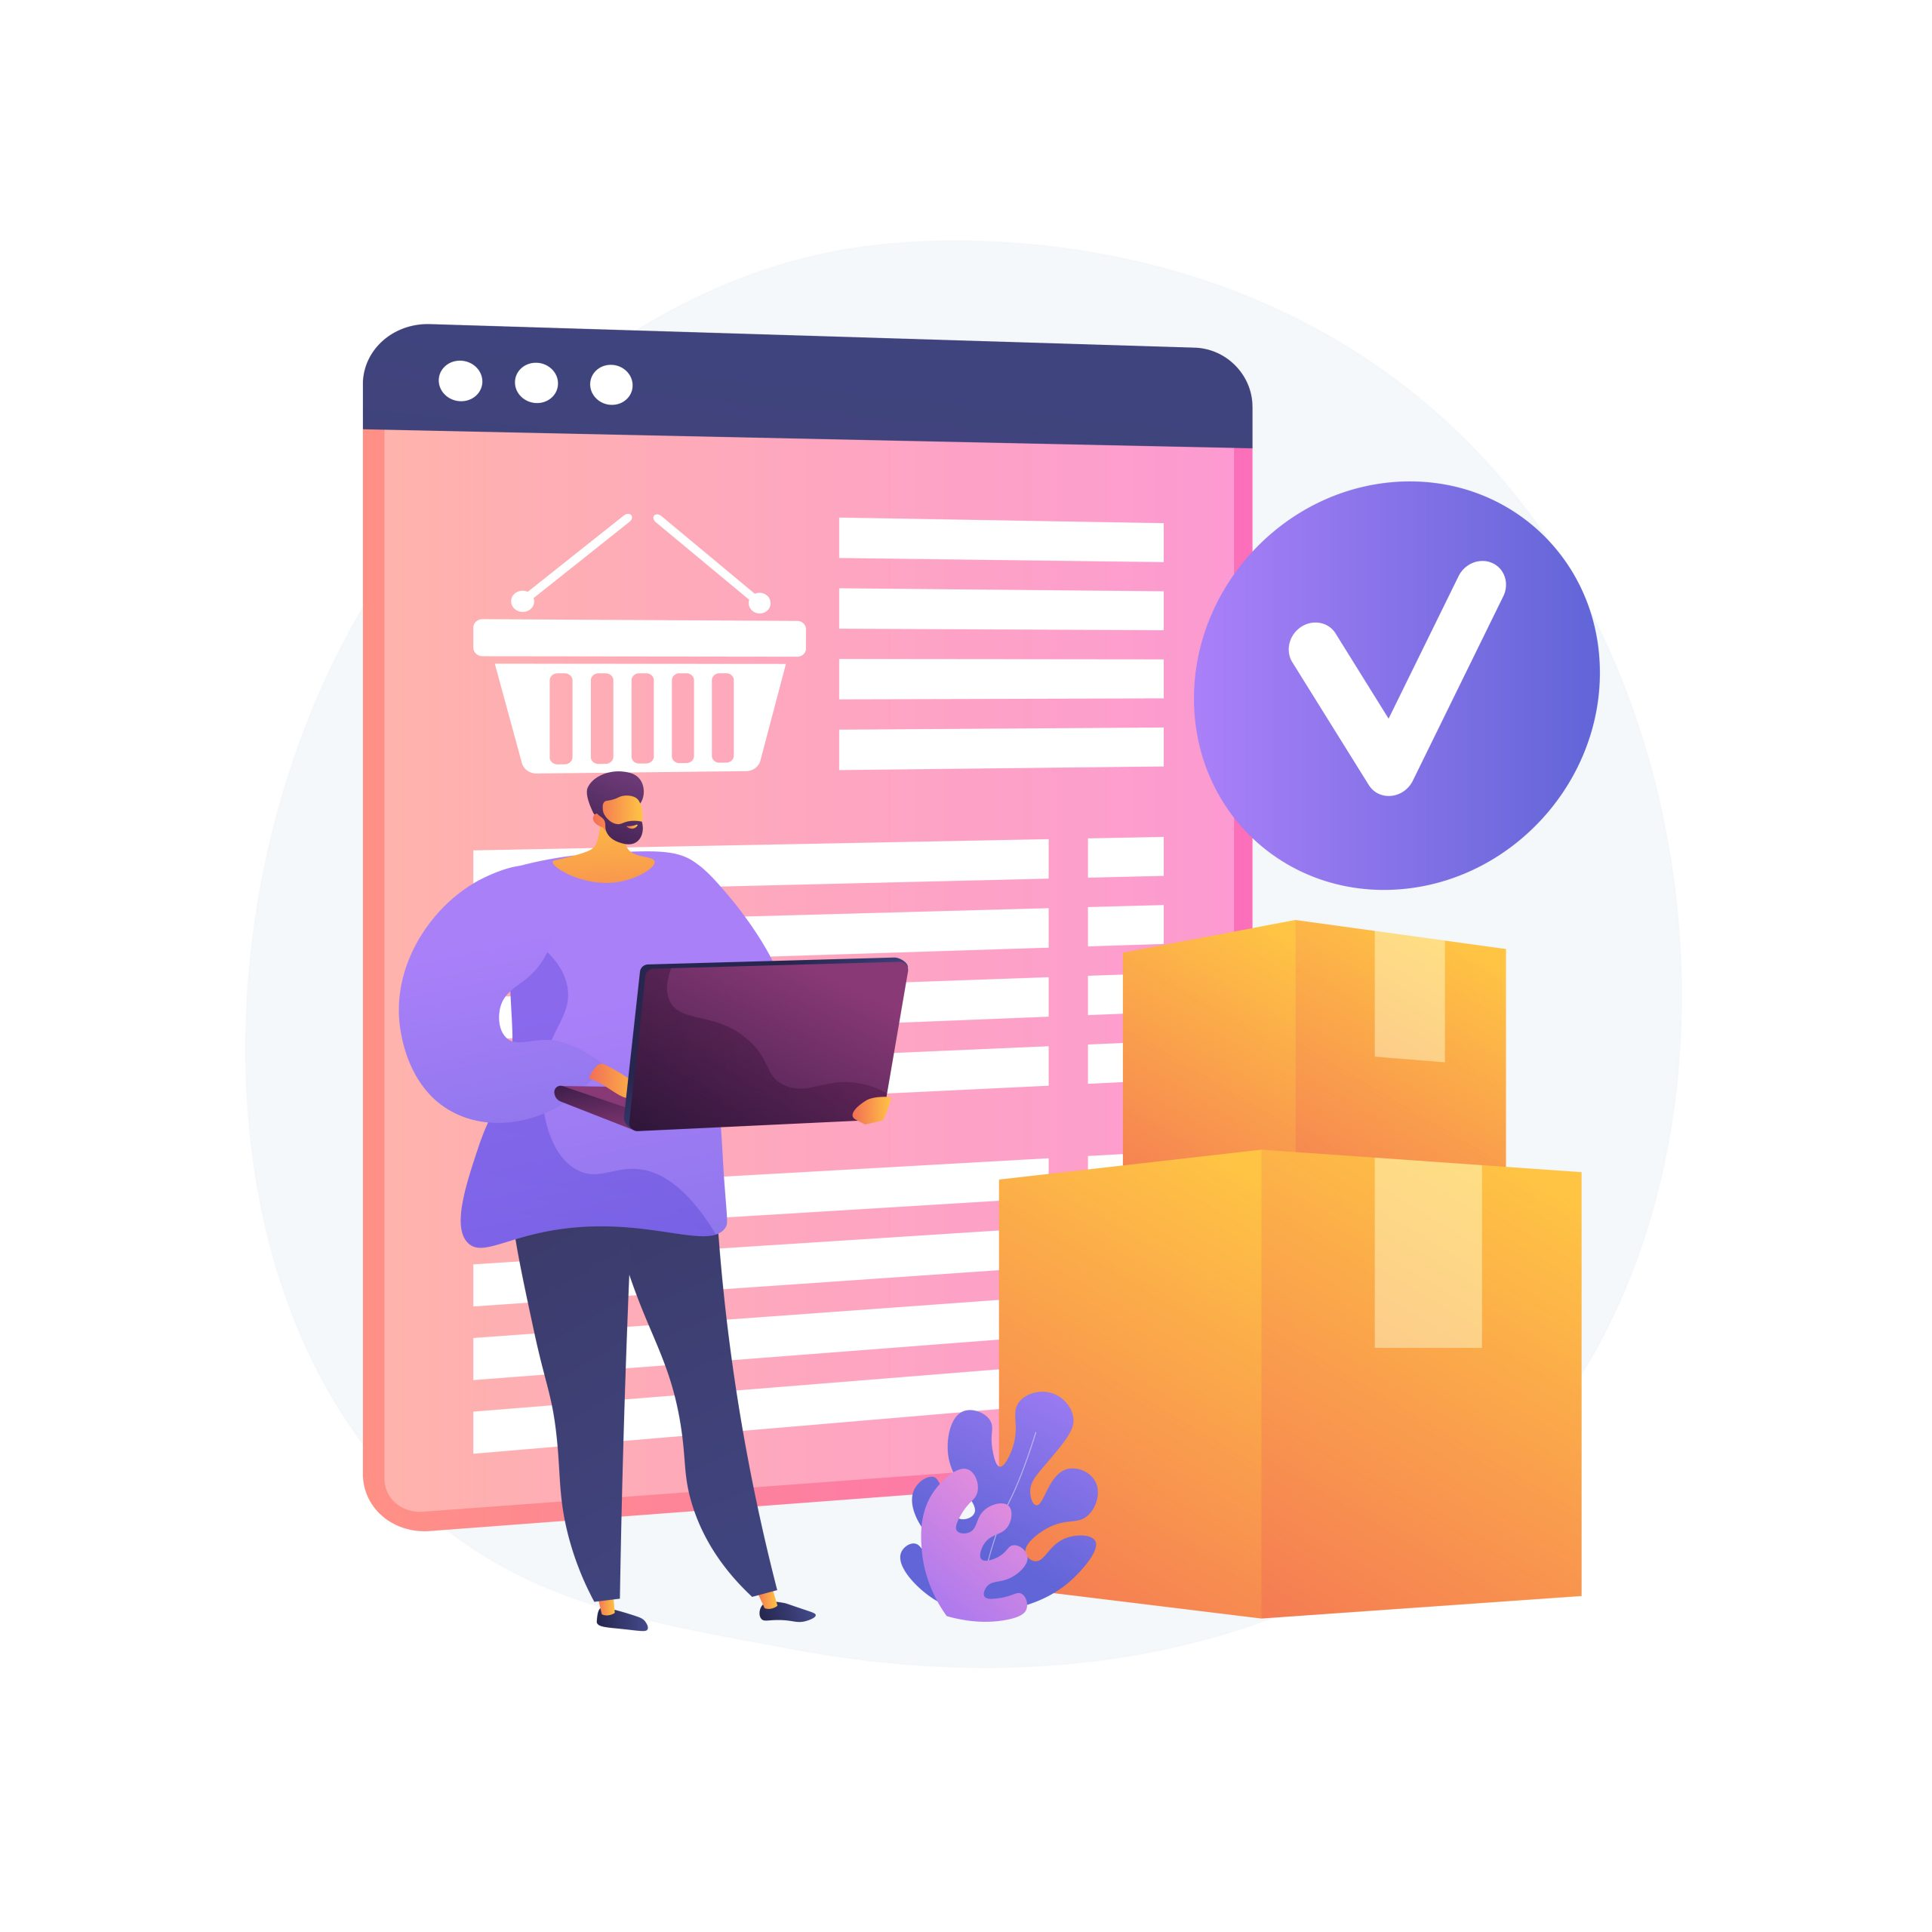 Online order delivery service, shipment. Internet shop basket, cardboard boxes, buyer with laptop. Delivery note on monitor screen and parcel. Vector isolated concept metaphor illustration.